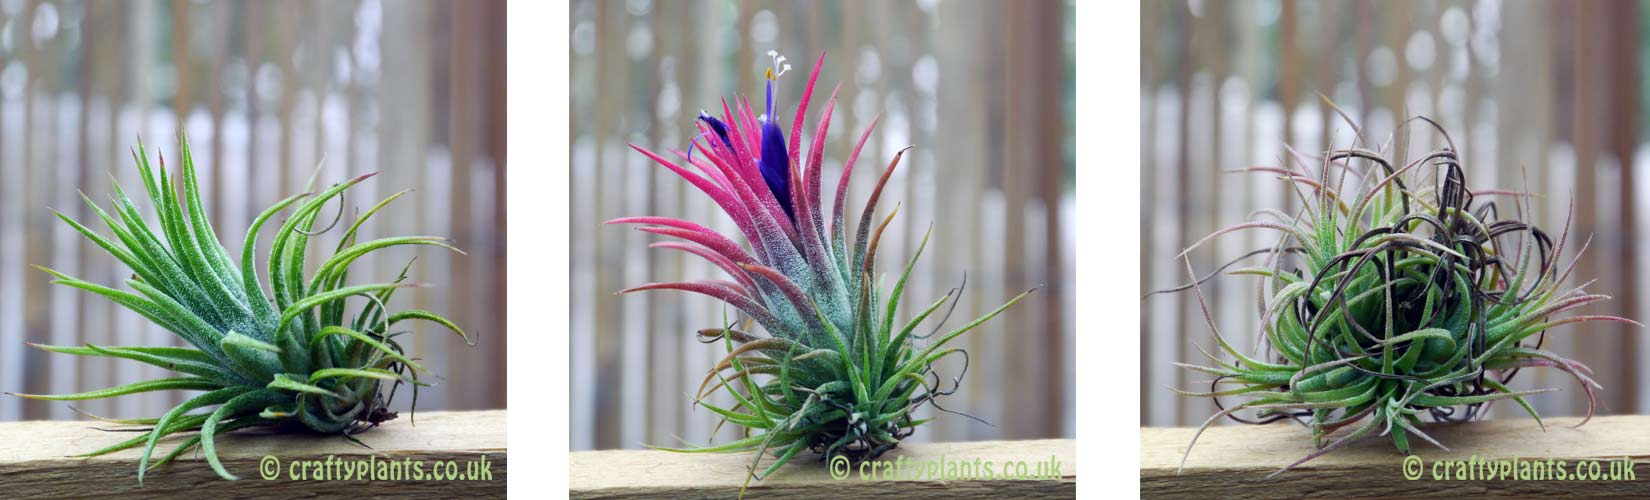 Left To Right - Tillandsia Ionantha Mexico single plant, flowering plant producing 'pups', parent plant withering as 'pups' start to form clump.